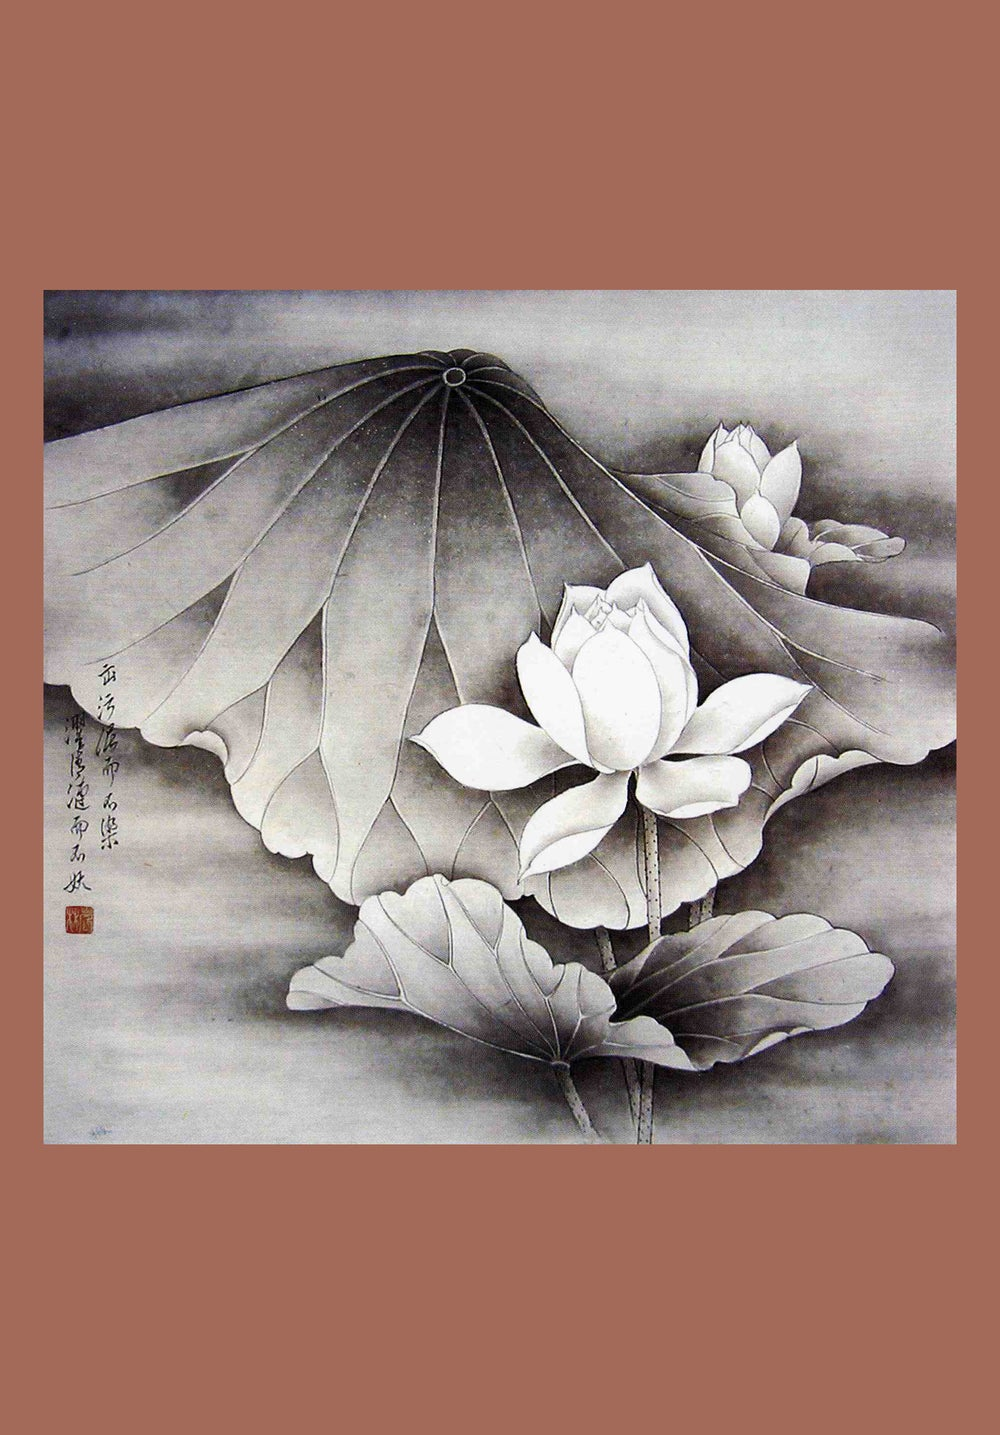 Image of framed print of Chinese Painting on canvas - Fragrance Over The Stream